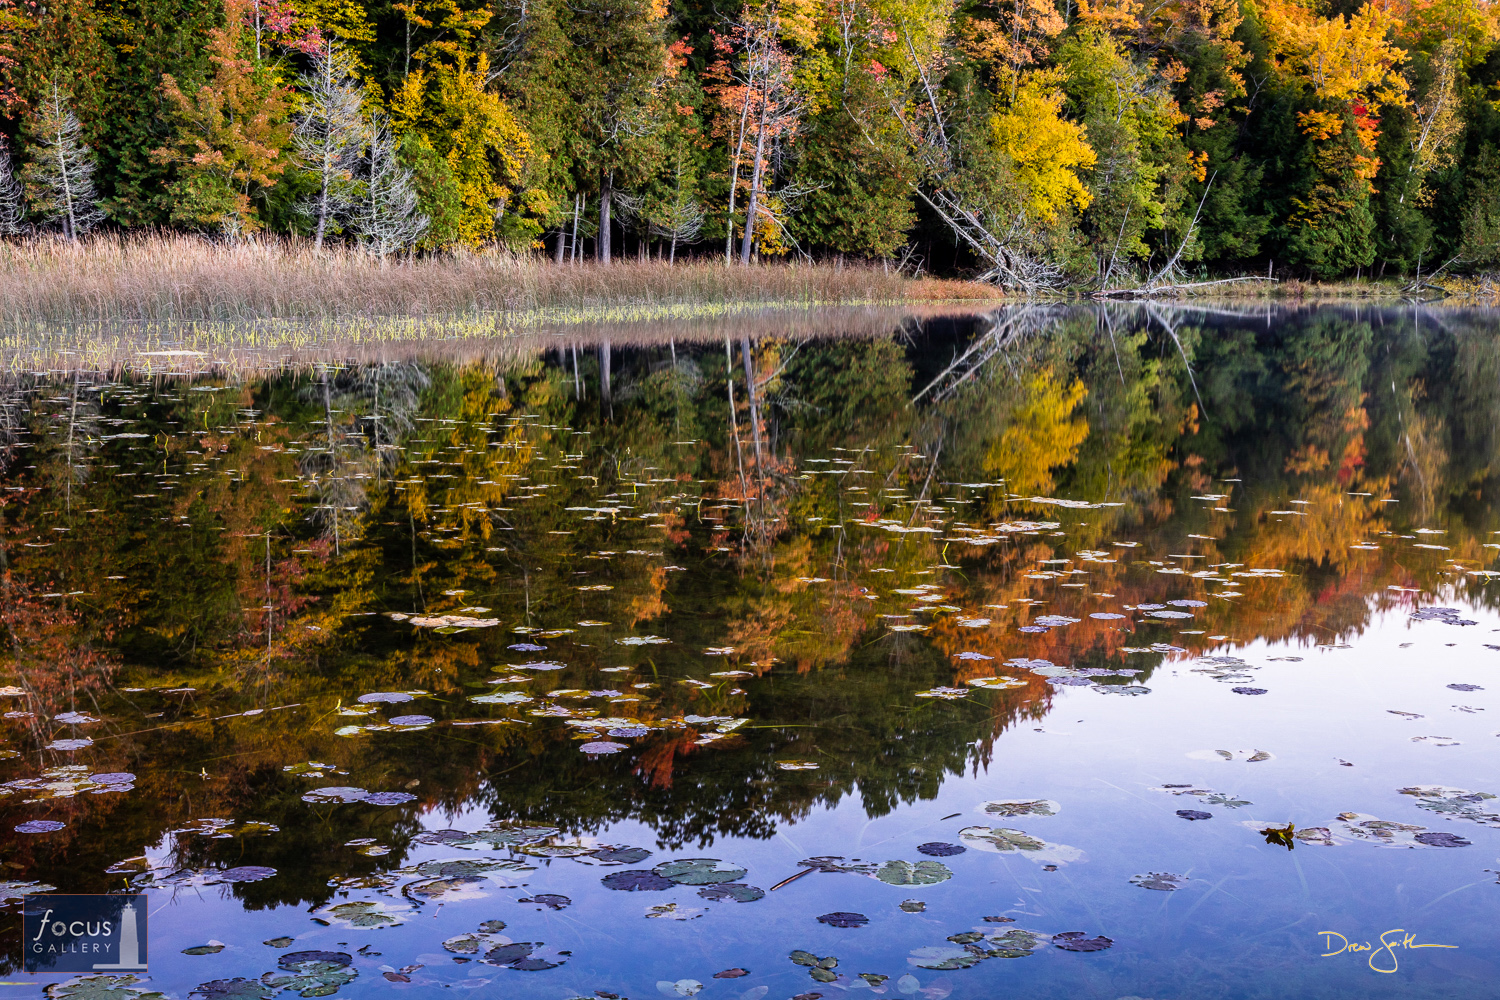 Photo © Drew Smith The colors of an autumn evening reflect on the calm surface of Lower Woodcock Lake. This image was taken...